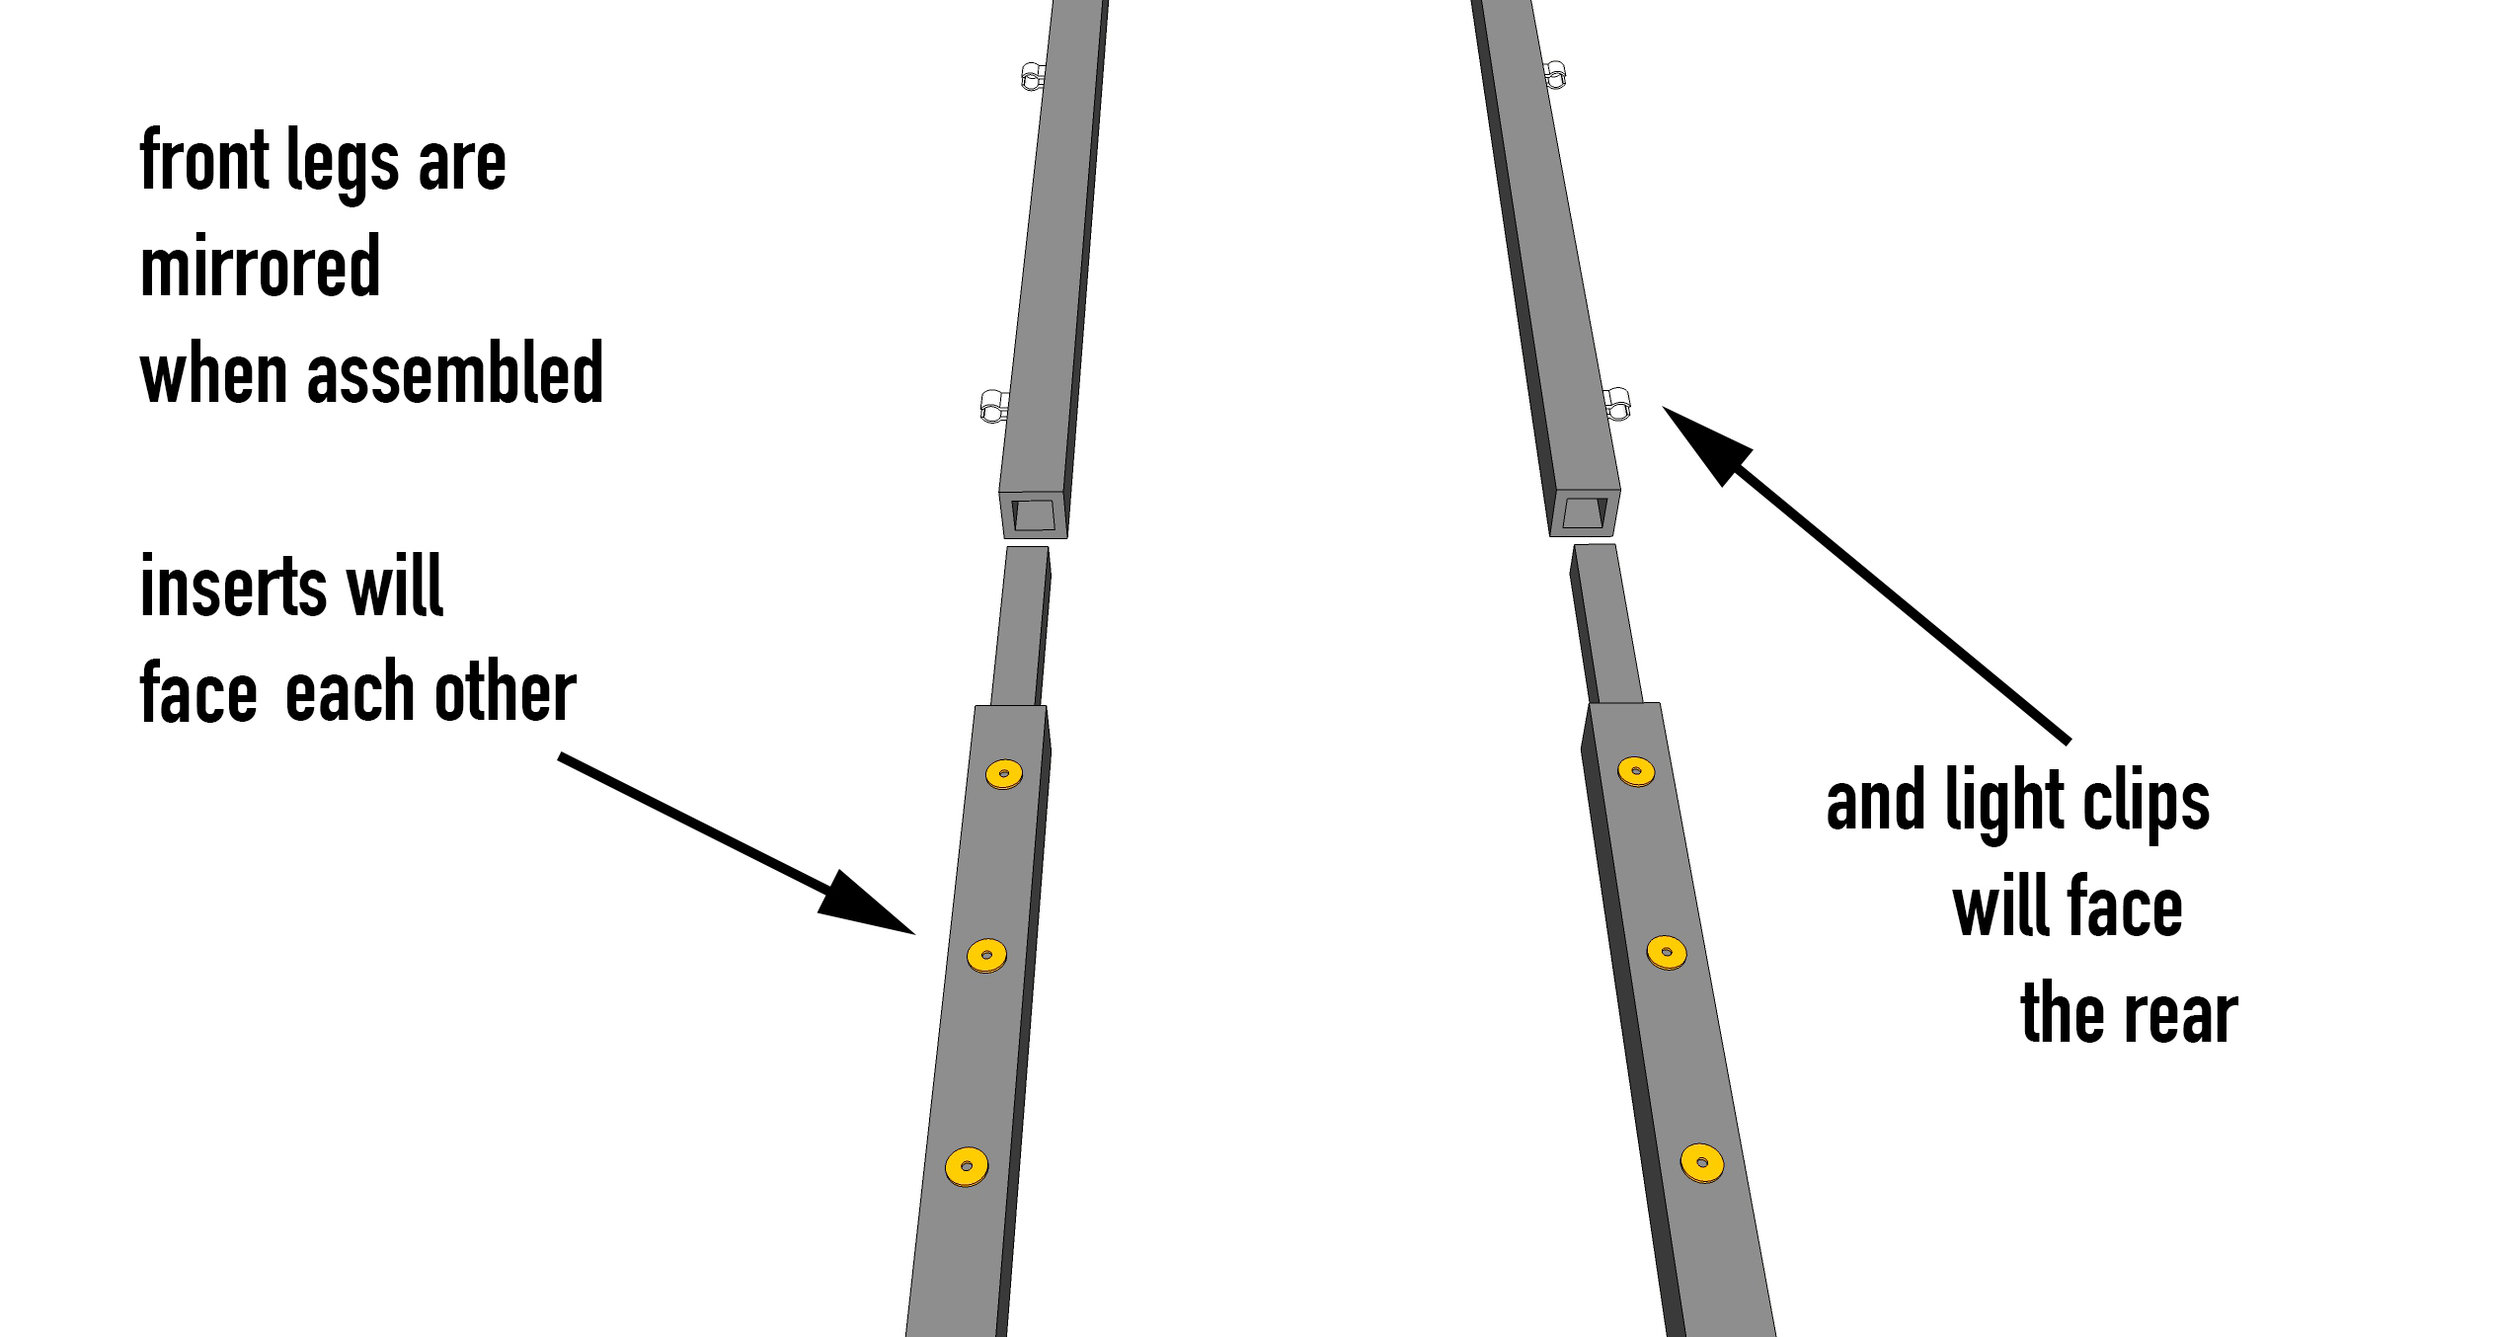 *Important: For each stand, the front legs will mirror each other so the light clips face rearward and the threaded inserts face each other.